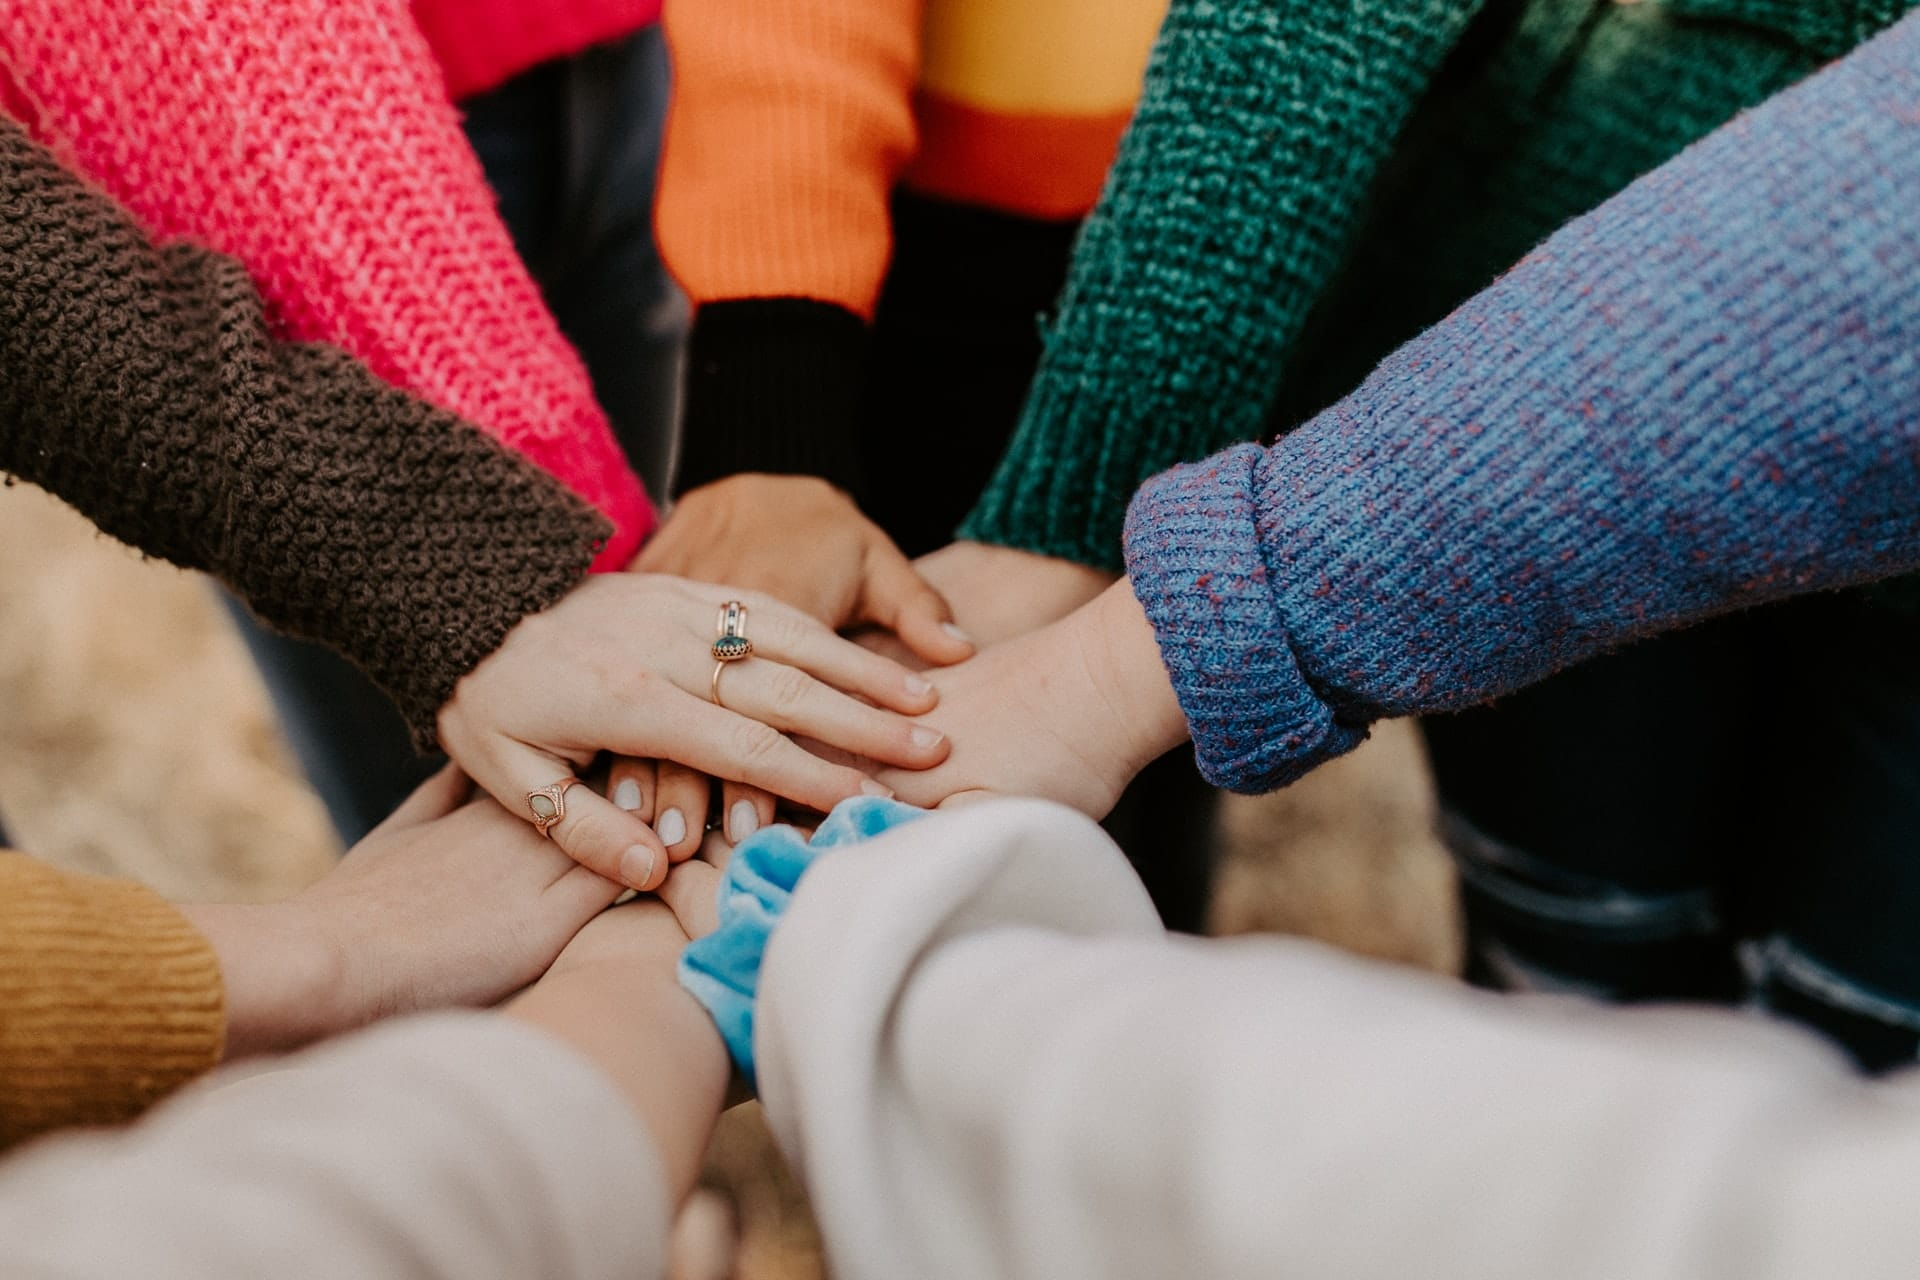 OpenAthens Federation. Hands in a circle showing community and inclusion.